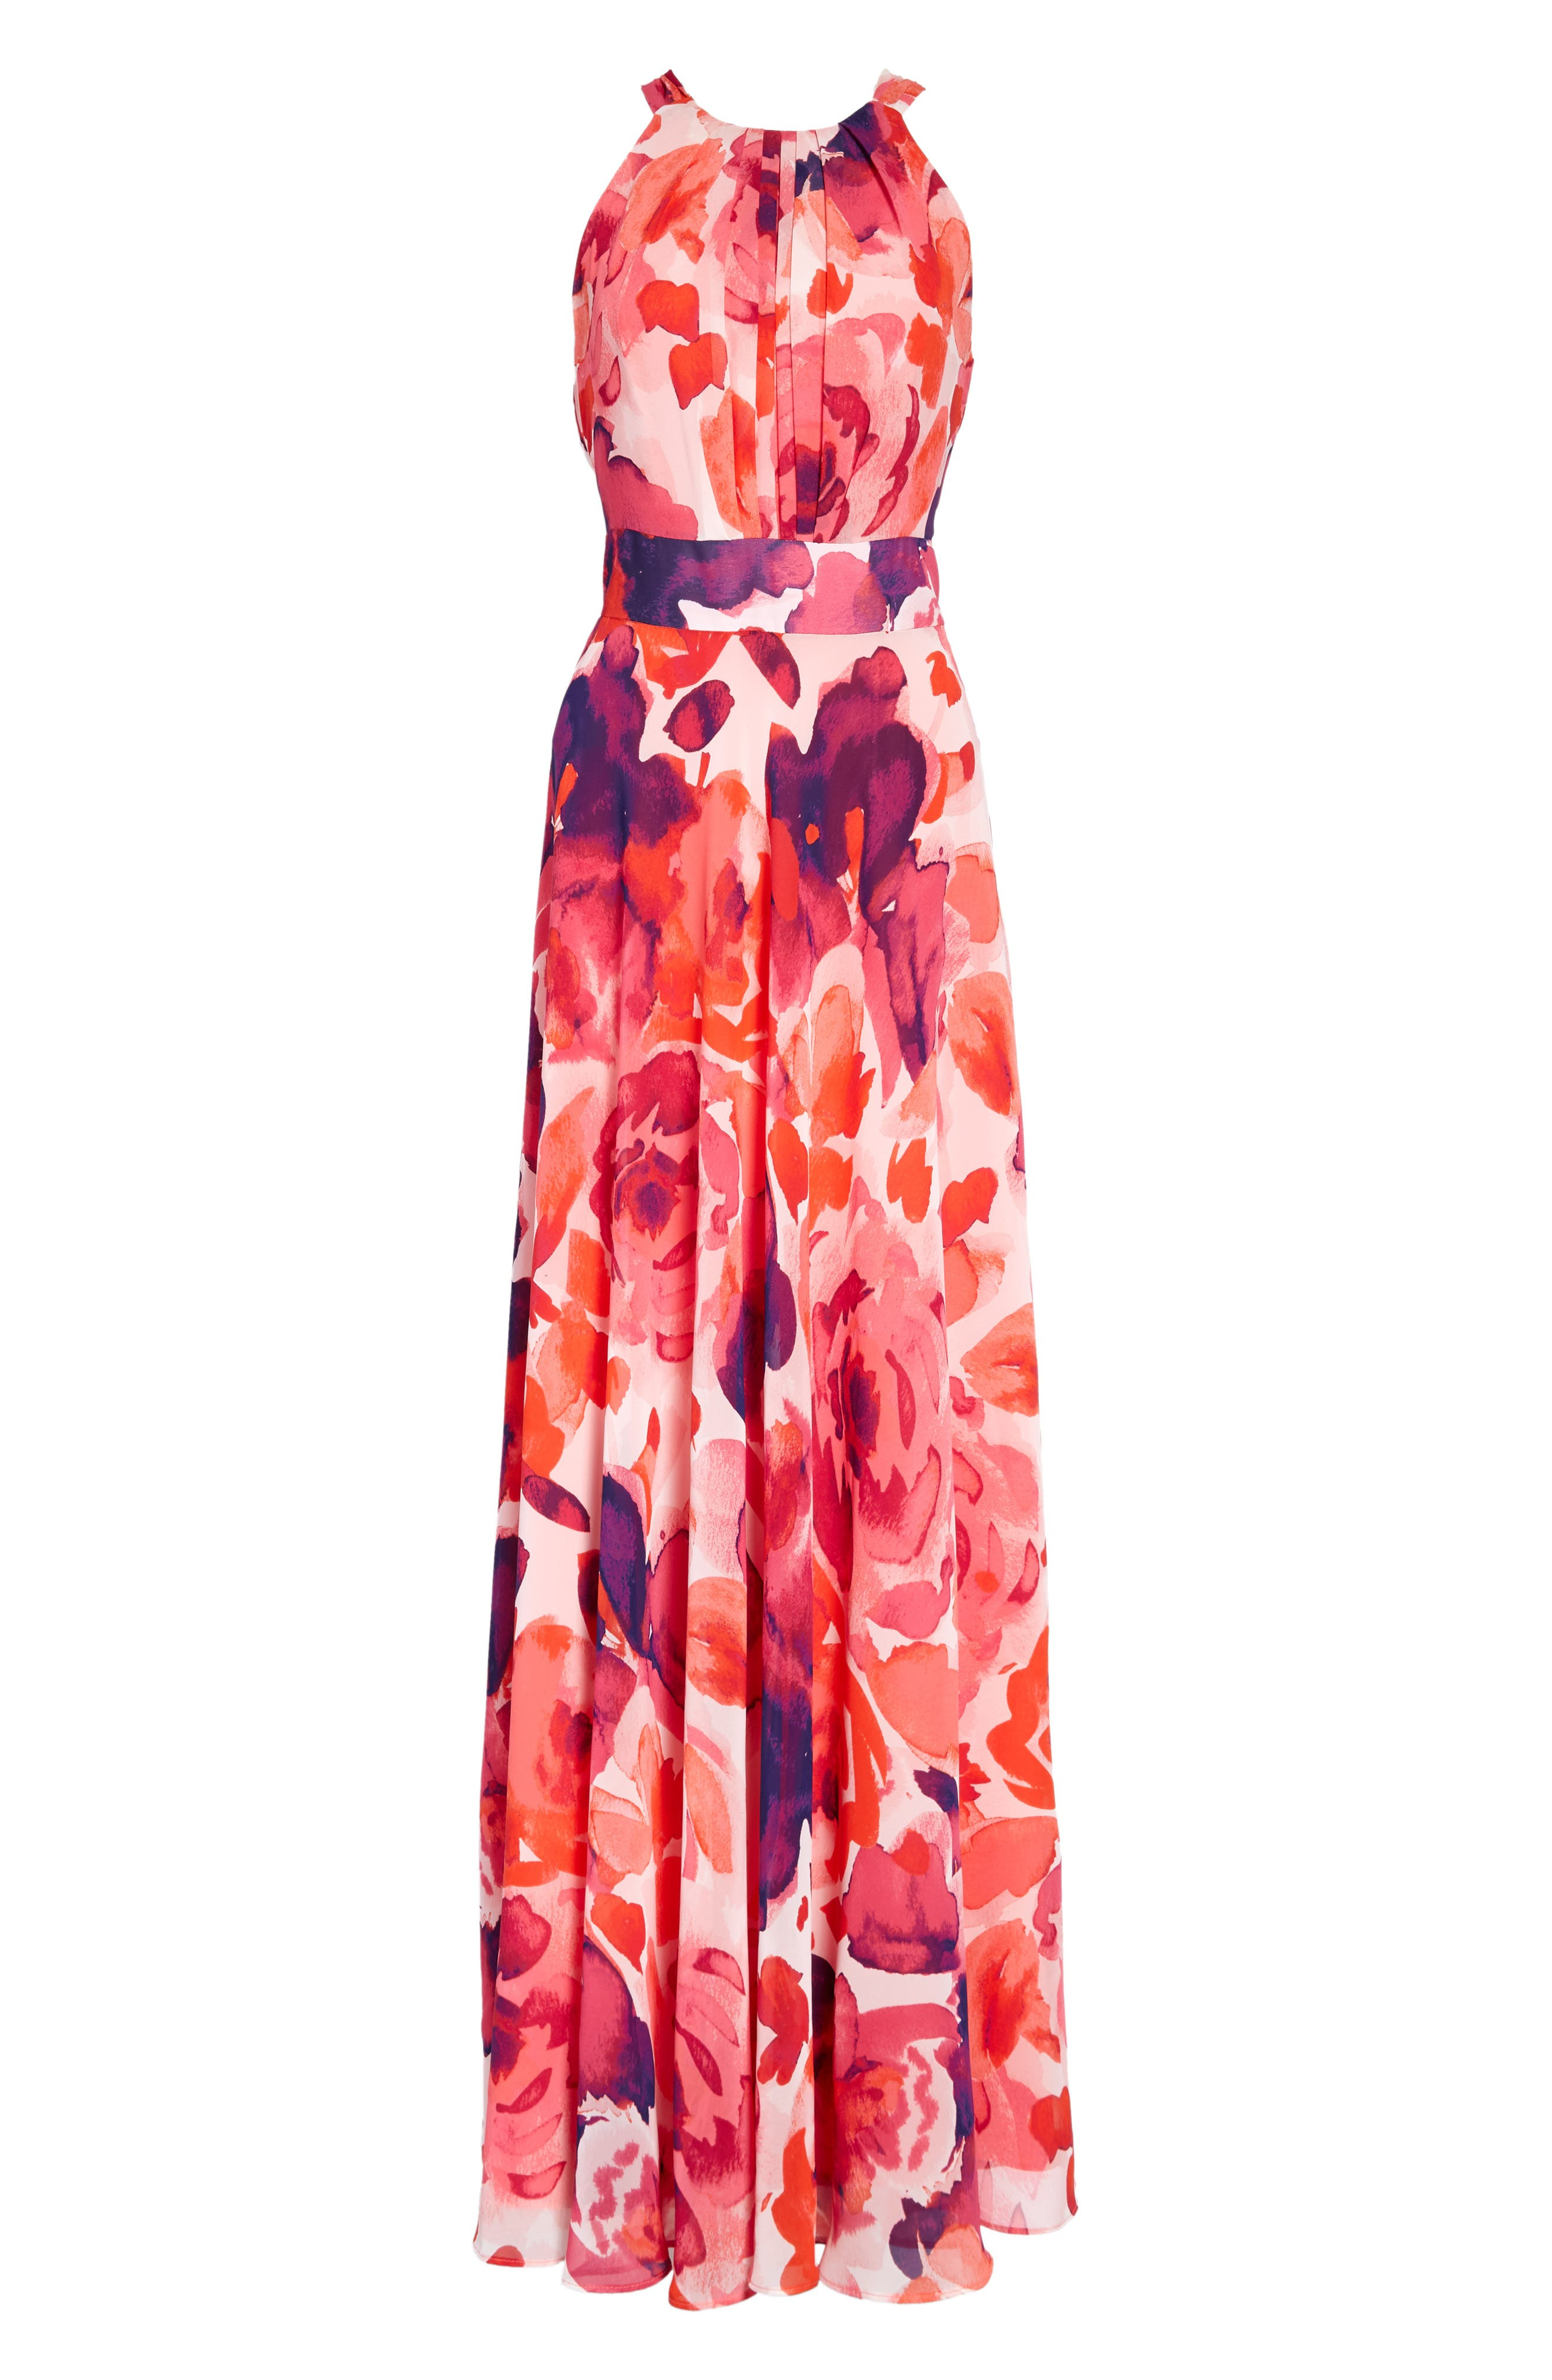 99874e1a94a UPC 688883996148 product image for Women s Eliza J Floral Print Halter Maxi  Dress